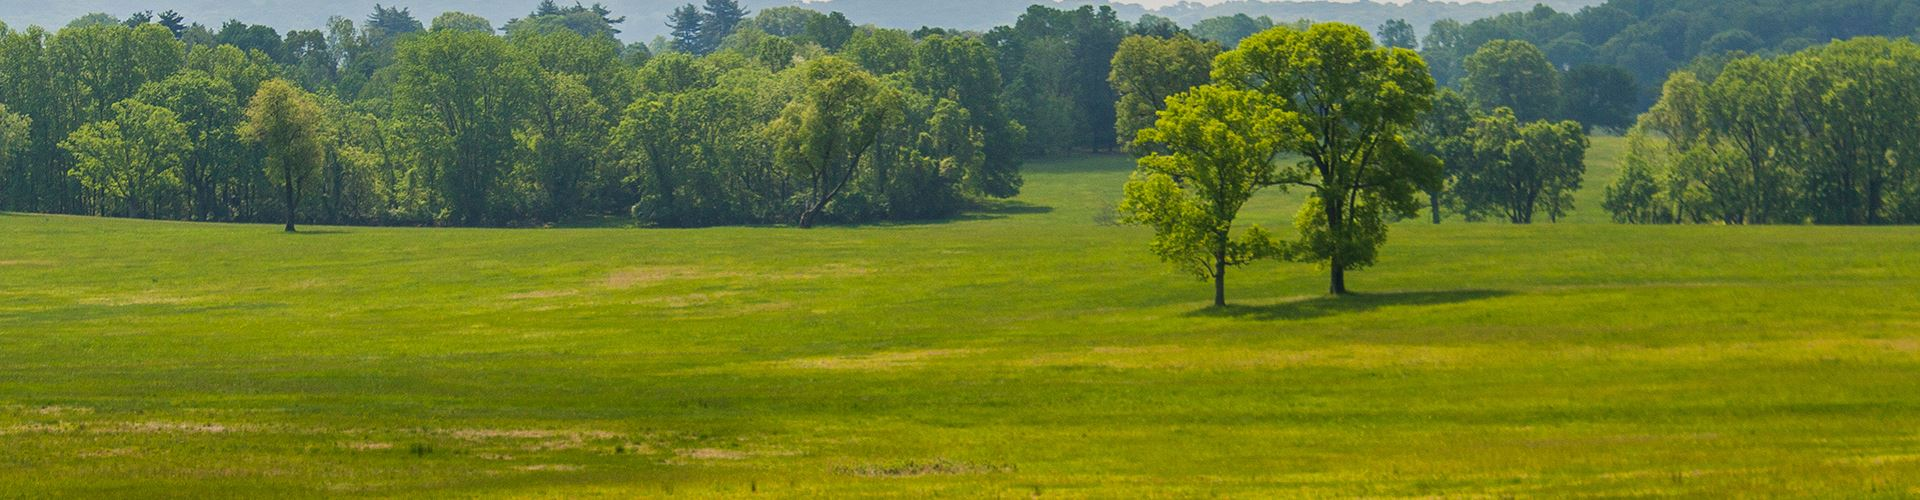 Green Pennsylvania field with trees